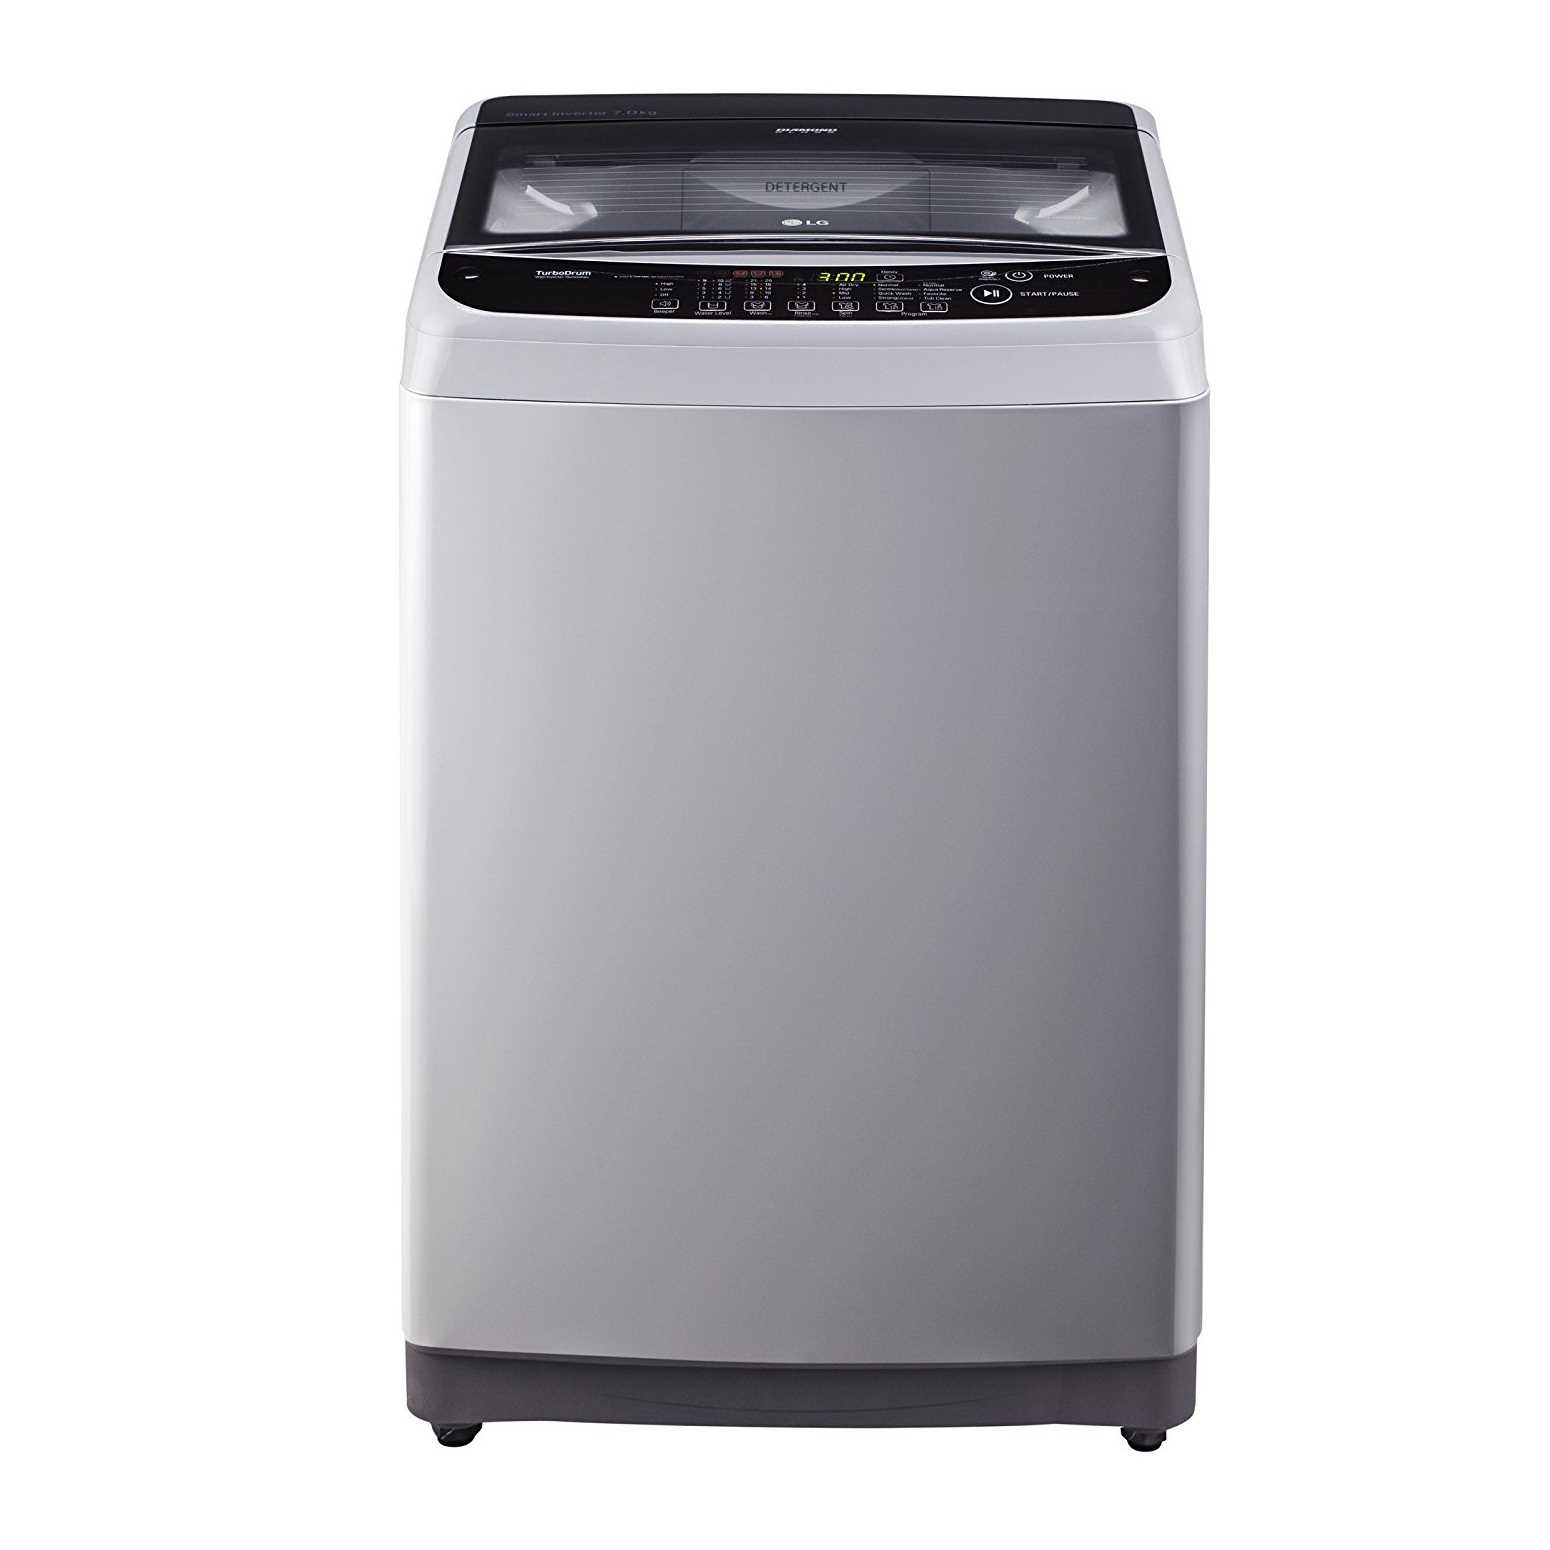 LG T8081NEDLJ 7 Kg Fully Automatic Top Loading Washing Machine